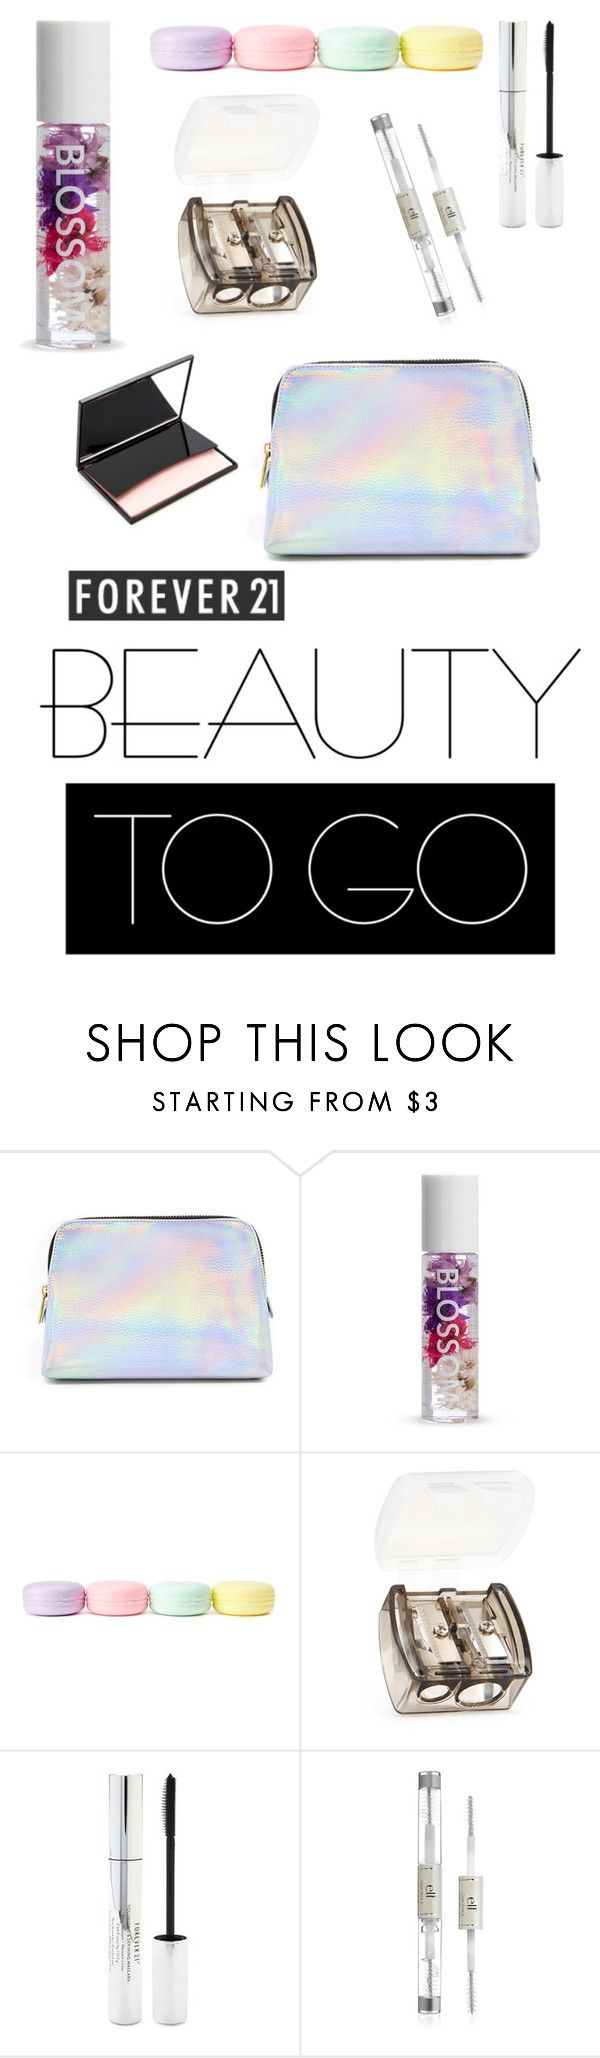 """beauty dupes 7"" by jayajav ❤ liked on Polyvore featuring beauty, Forever 21, makeup, forever21, F21 and togo"